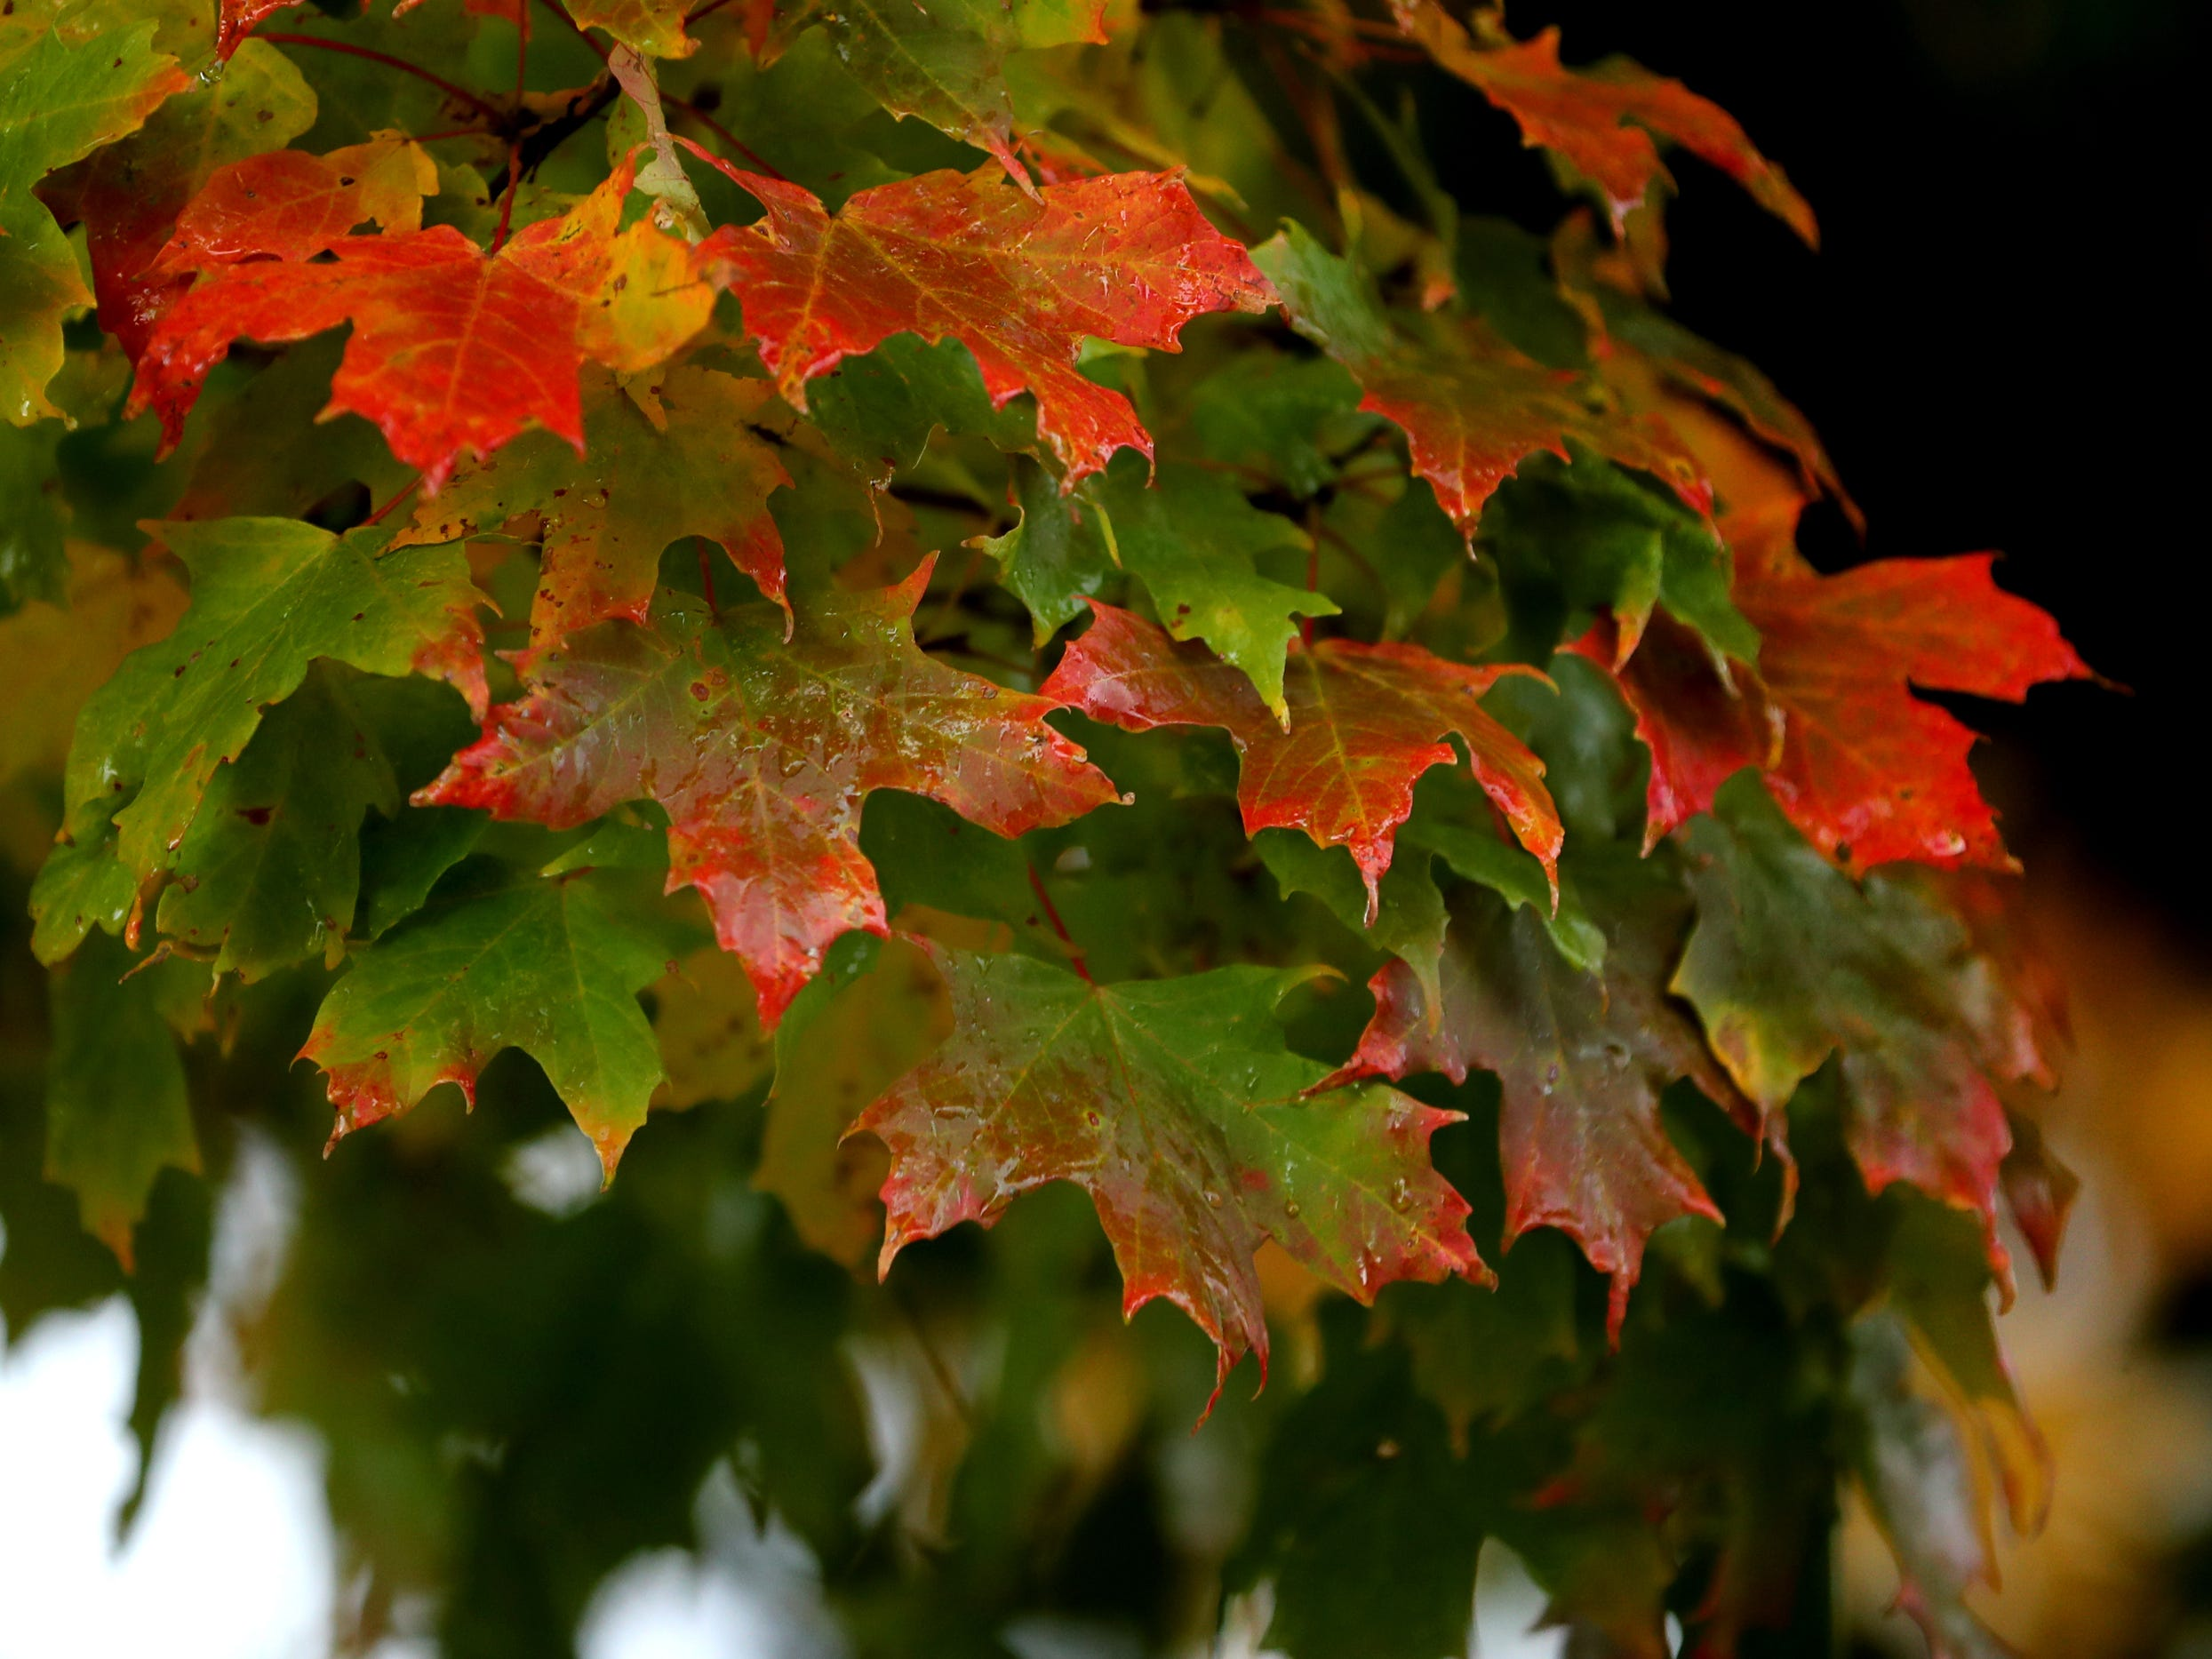 Not all the leaves in the Murfreesboro downtown area have reached their full color, on Thursday, Nov. 1, 2018. Some trees have leaves near the bottom of the tree that are either still green or just starting to change.